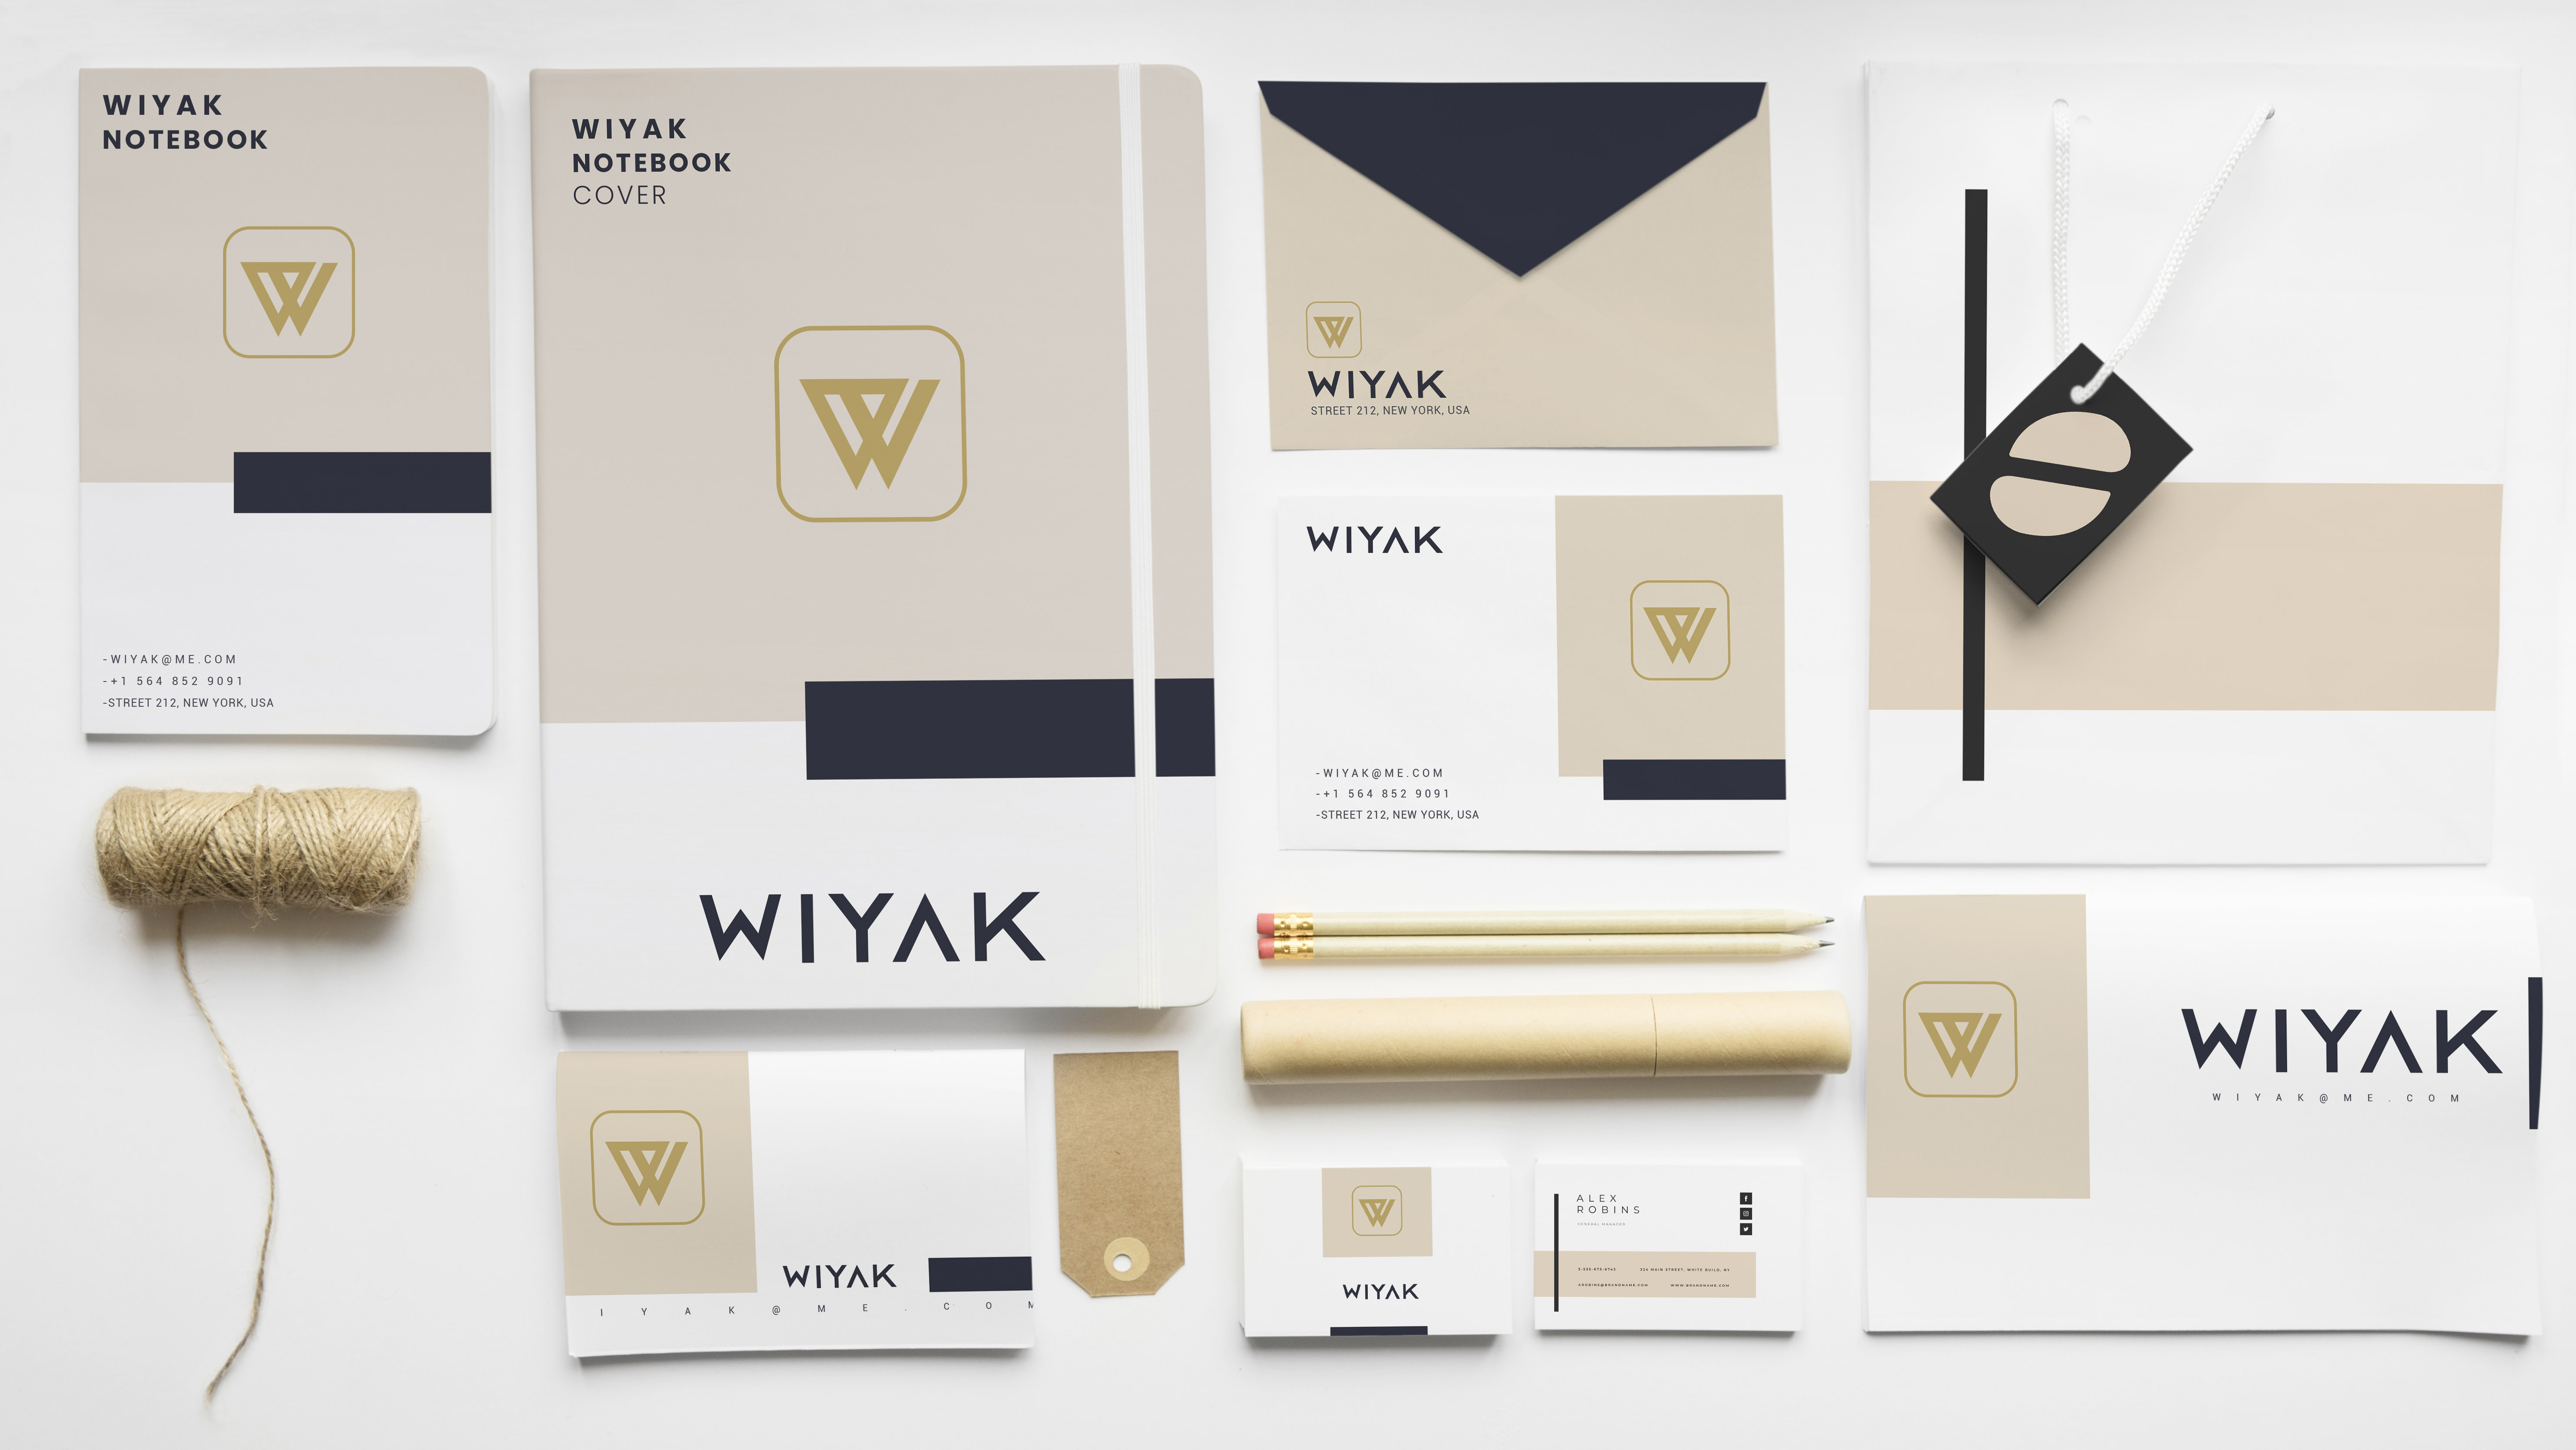 modern minimalist logo brand identity and logo guideline for existing or startup company